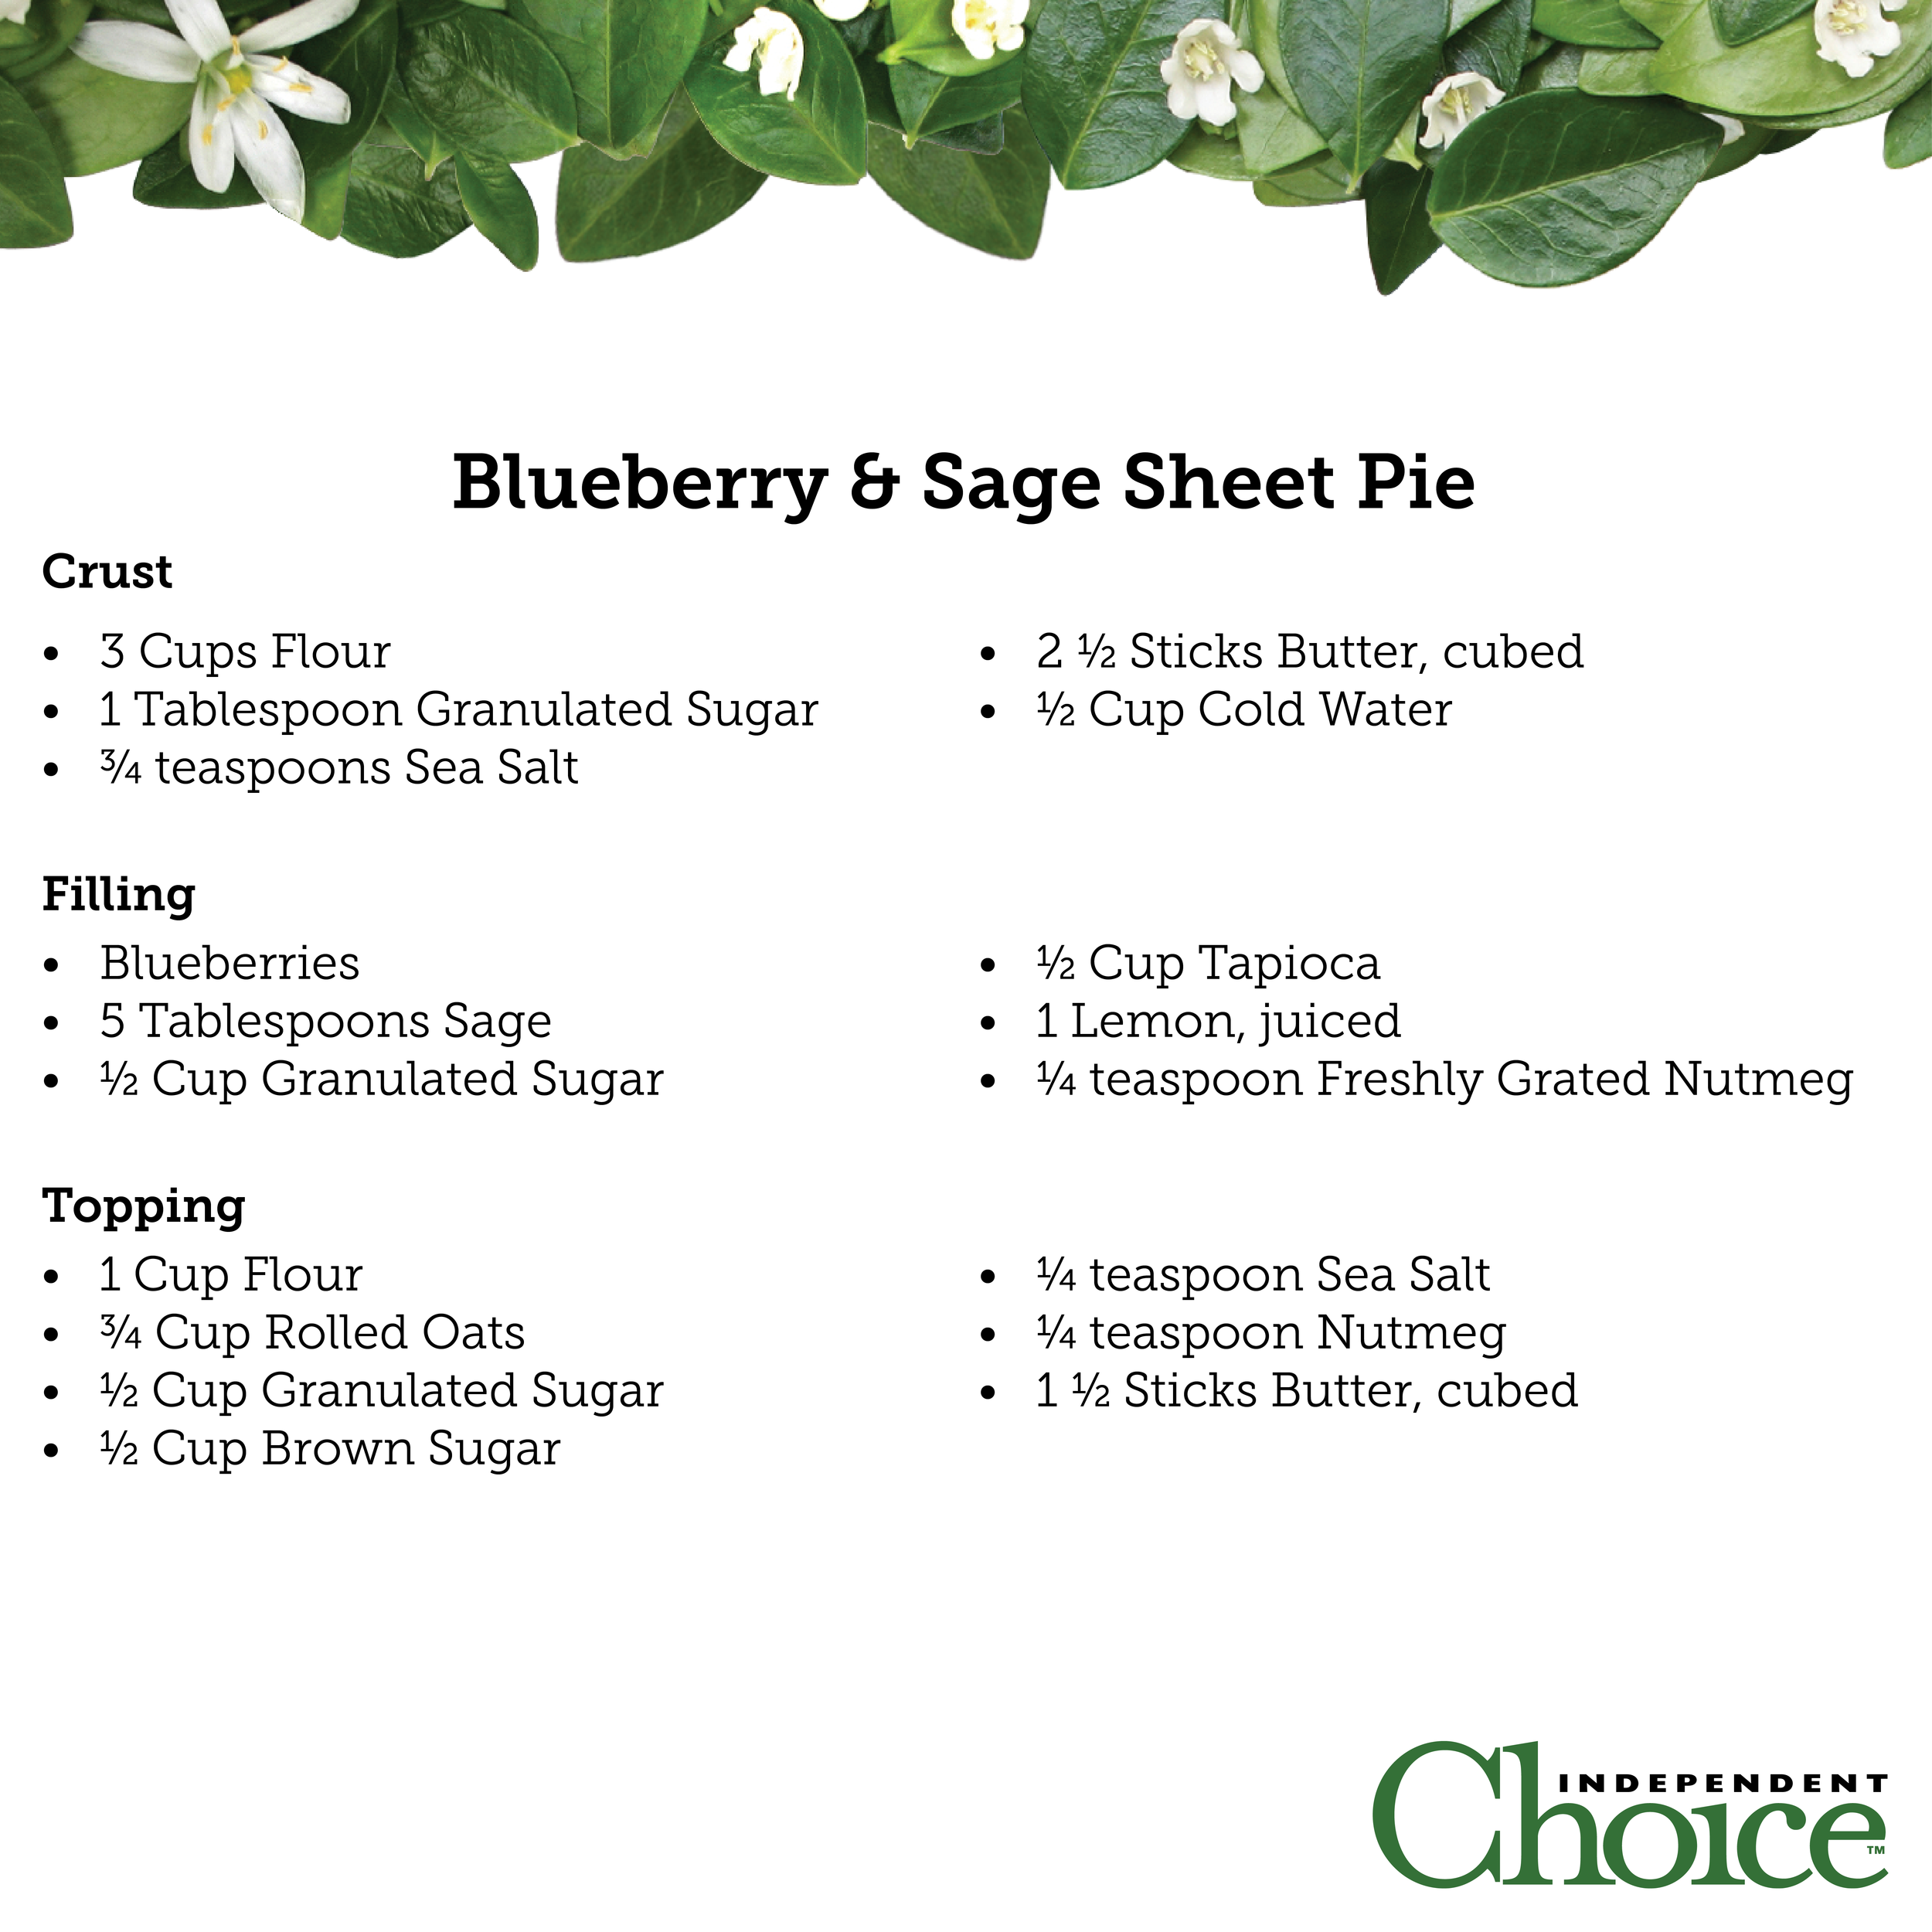 Blueberry & Sage Sheet Pie_1.png